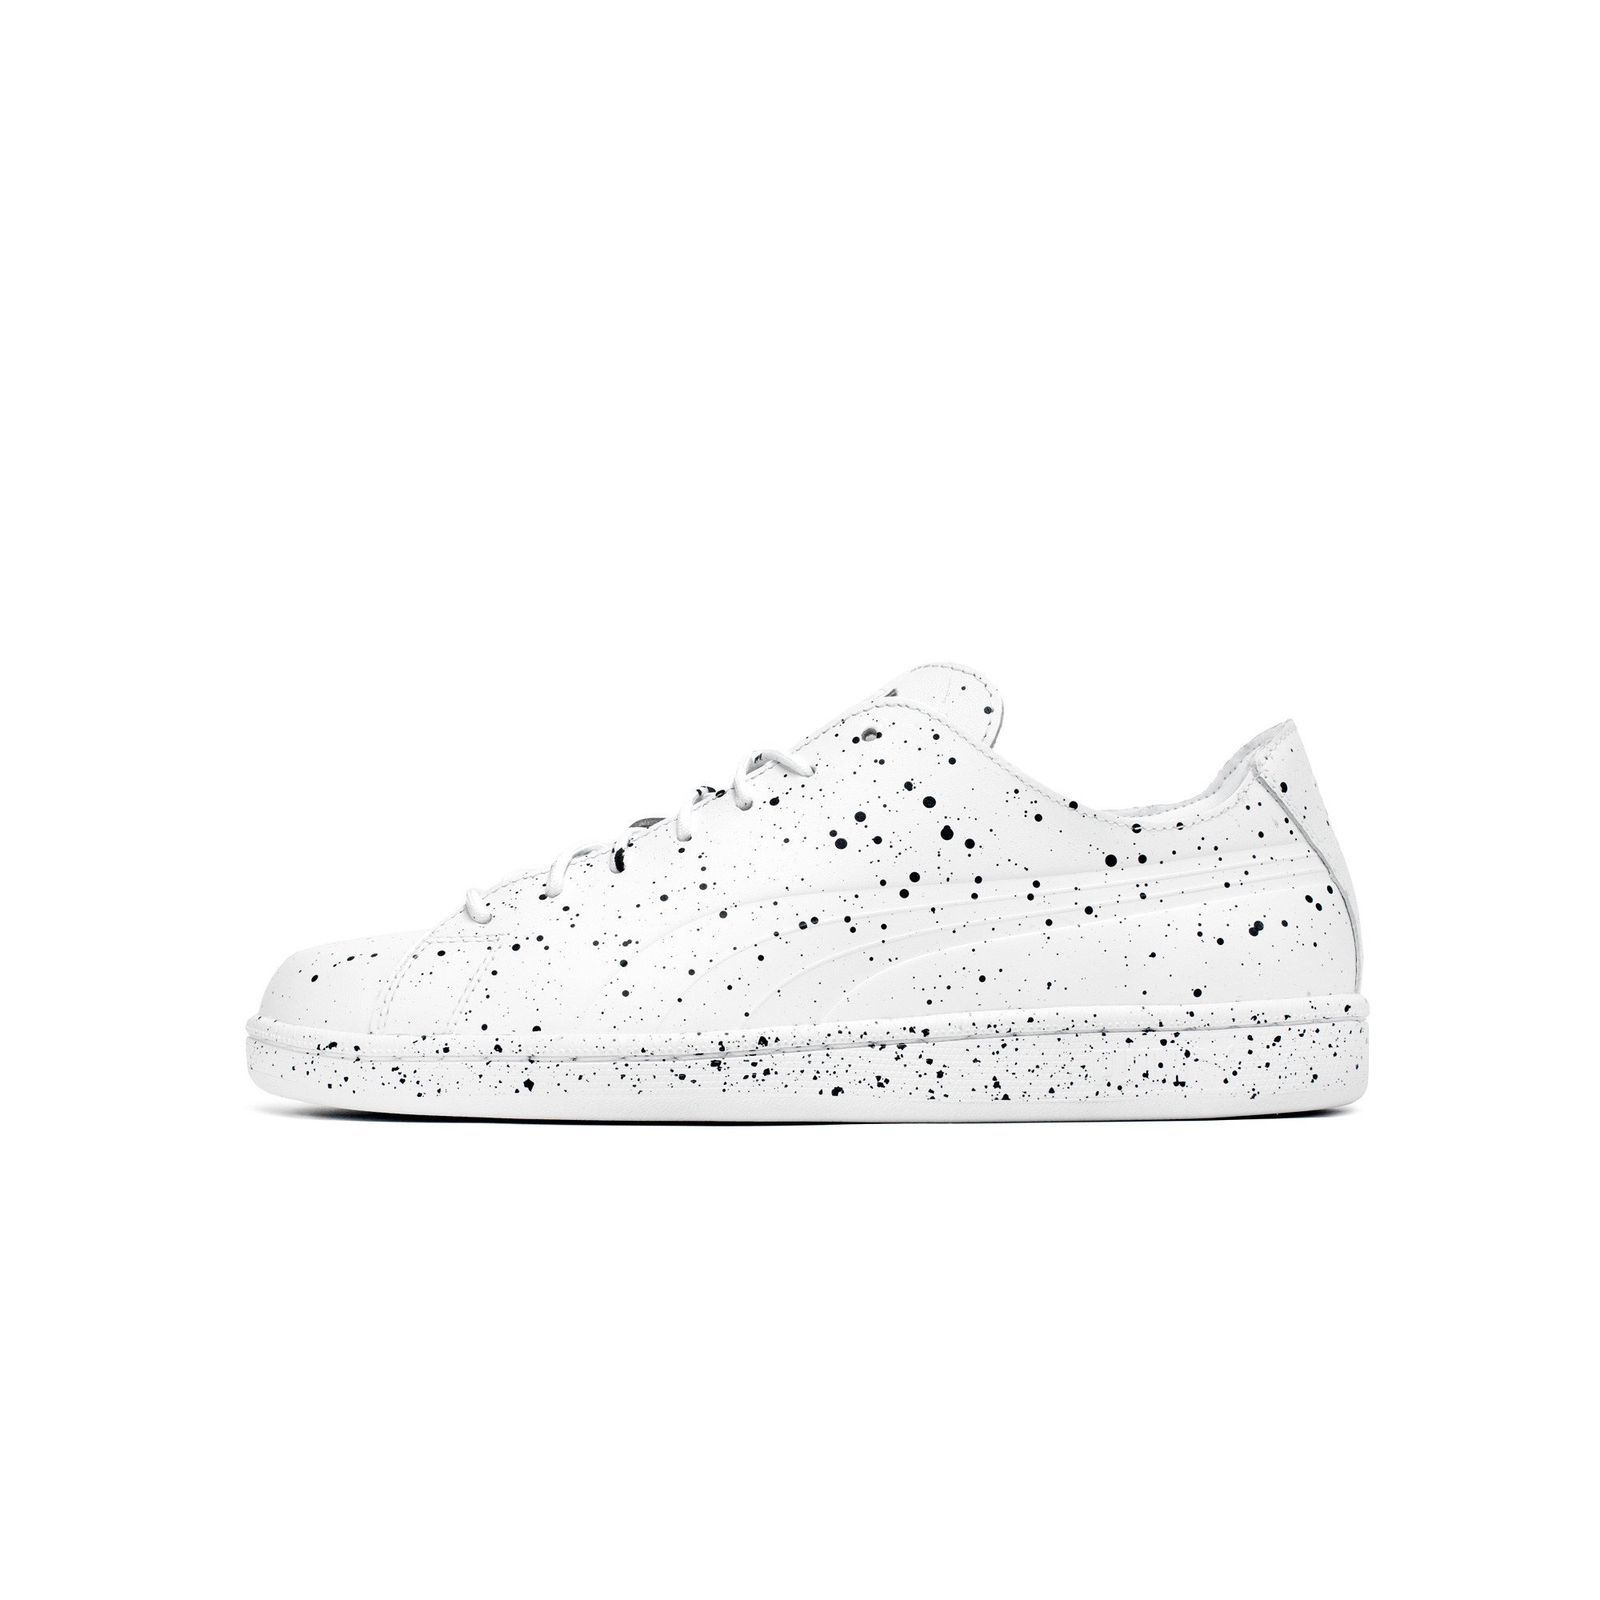 Mens Puma x Daily Paper Match Splatter White Black 363456-01